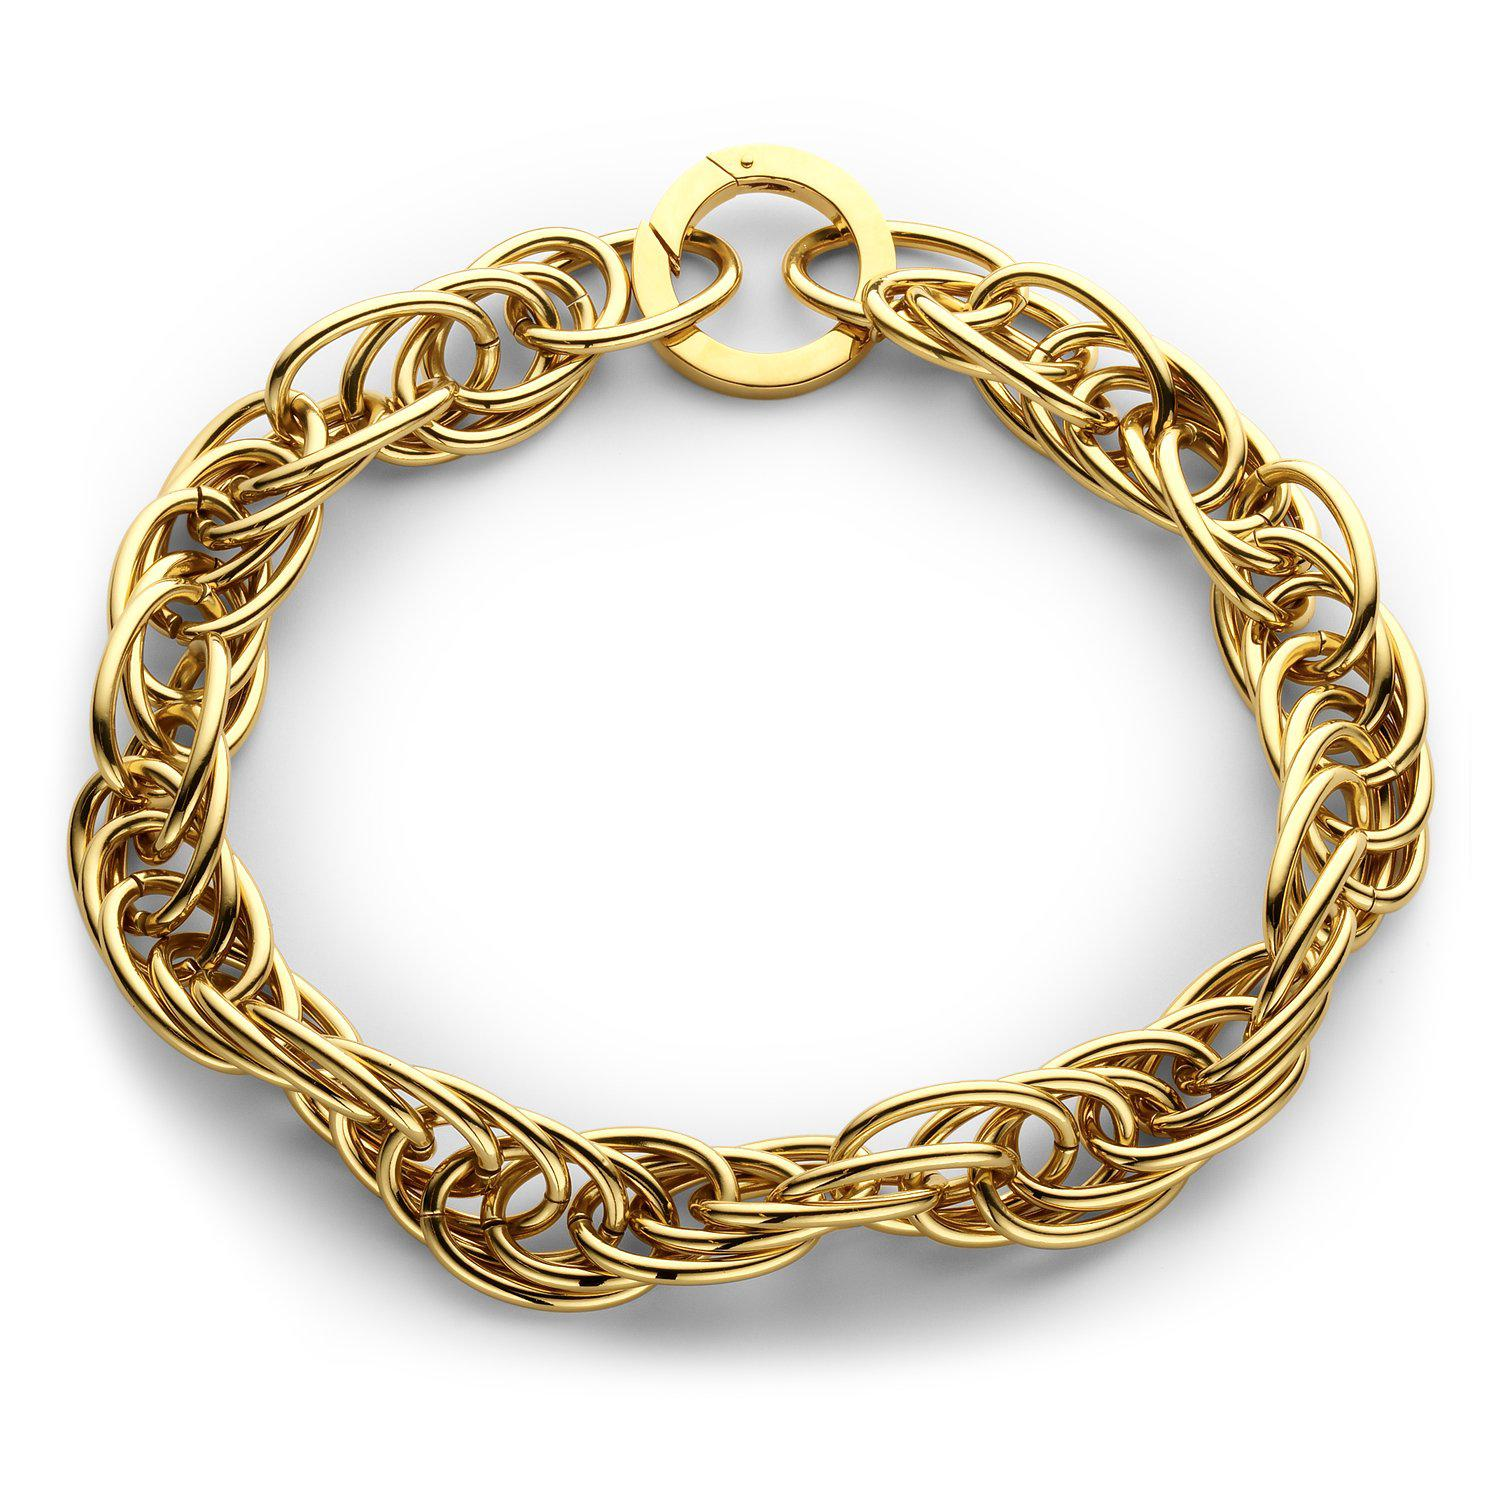 Large snake statement necklace gold-Halsketting-Souvenirs de Pomme